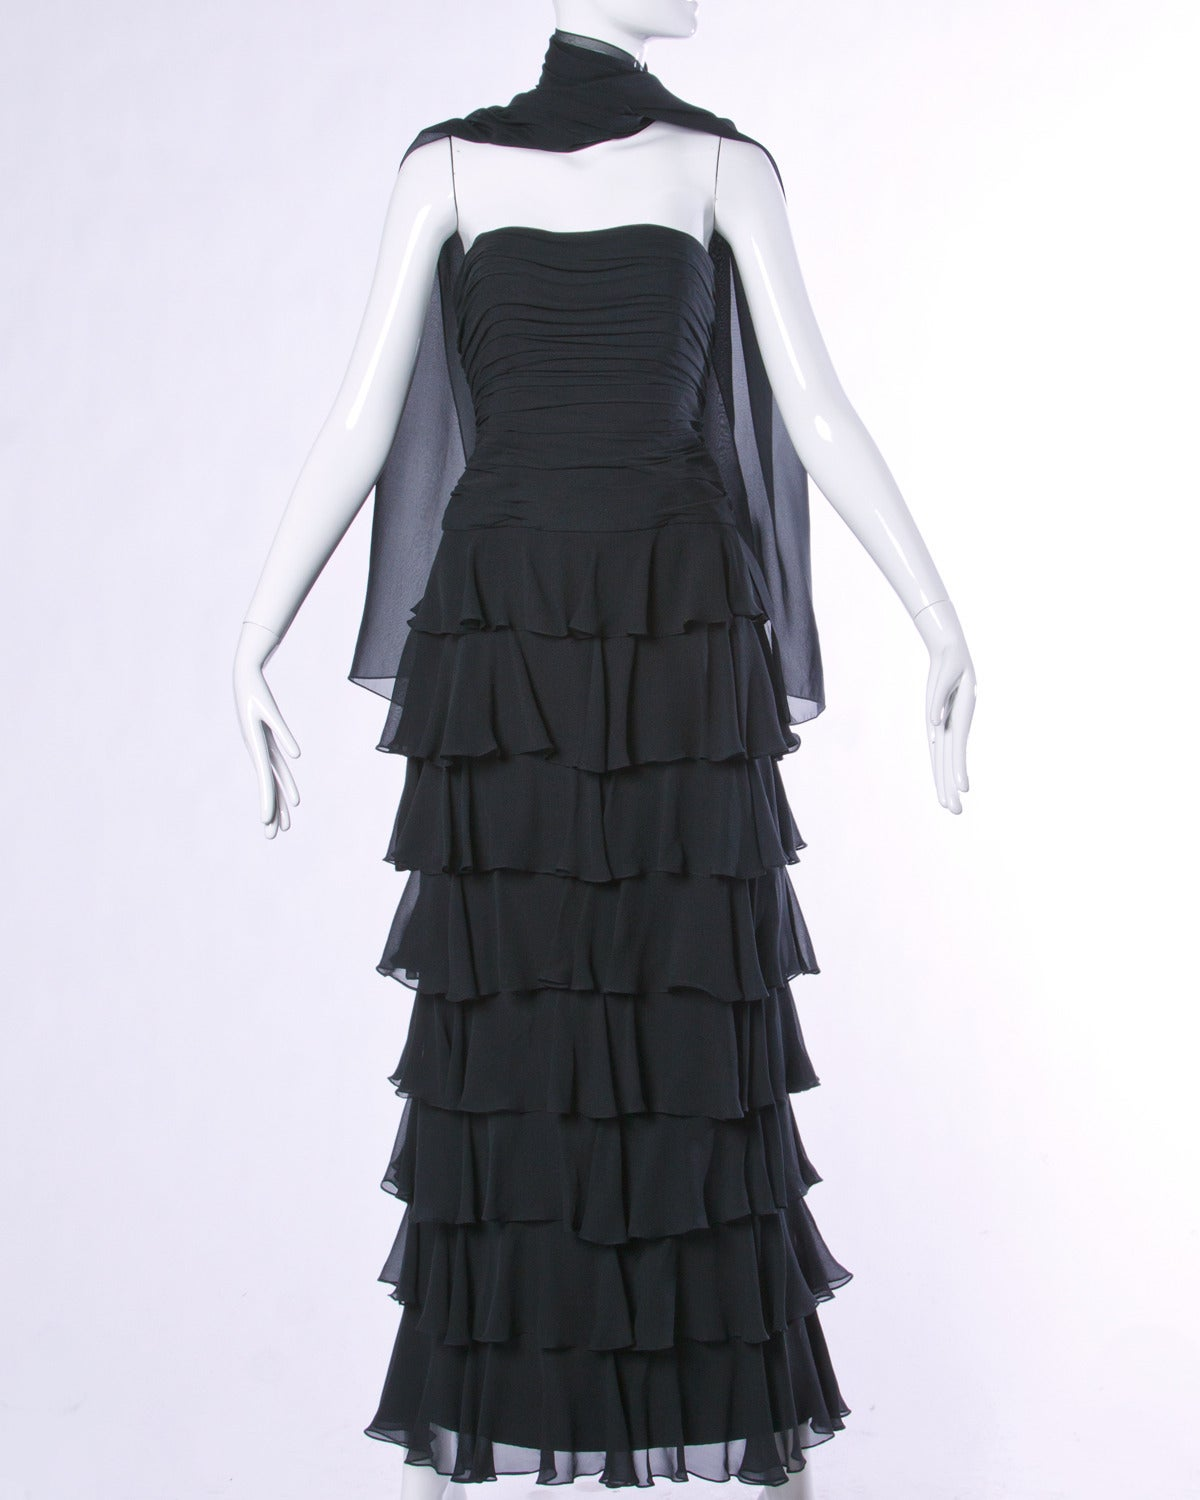 Lillie Rubin Vintage Black Tiered Silk Chiffon Strapless Evening Gown In Excellent Condition For Sale In Sparks, NV